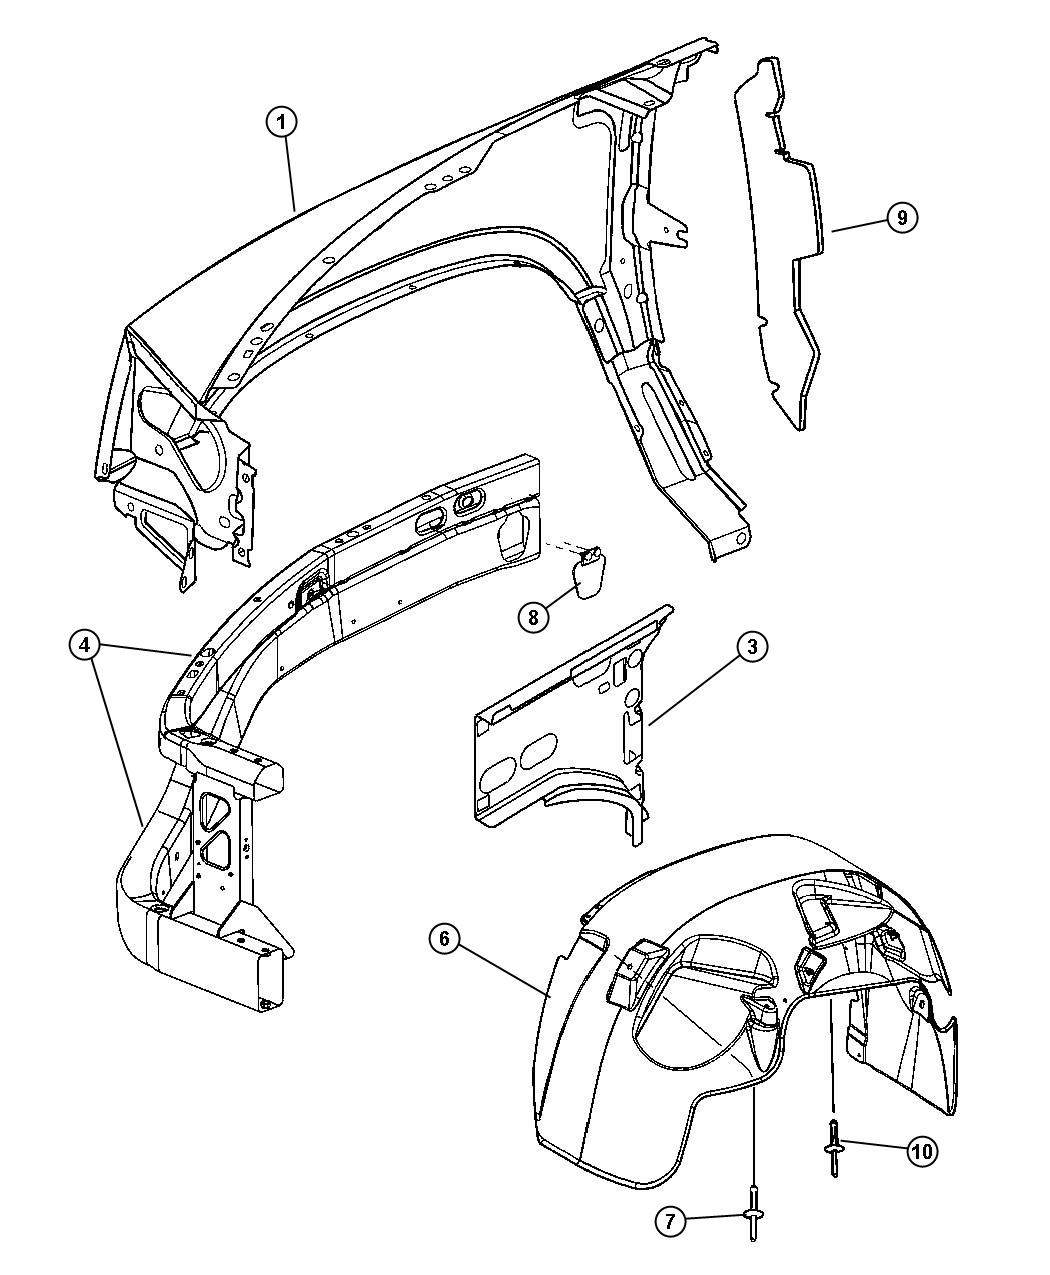 Service manual [Fender To Radiator Brace Removal 2008